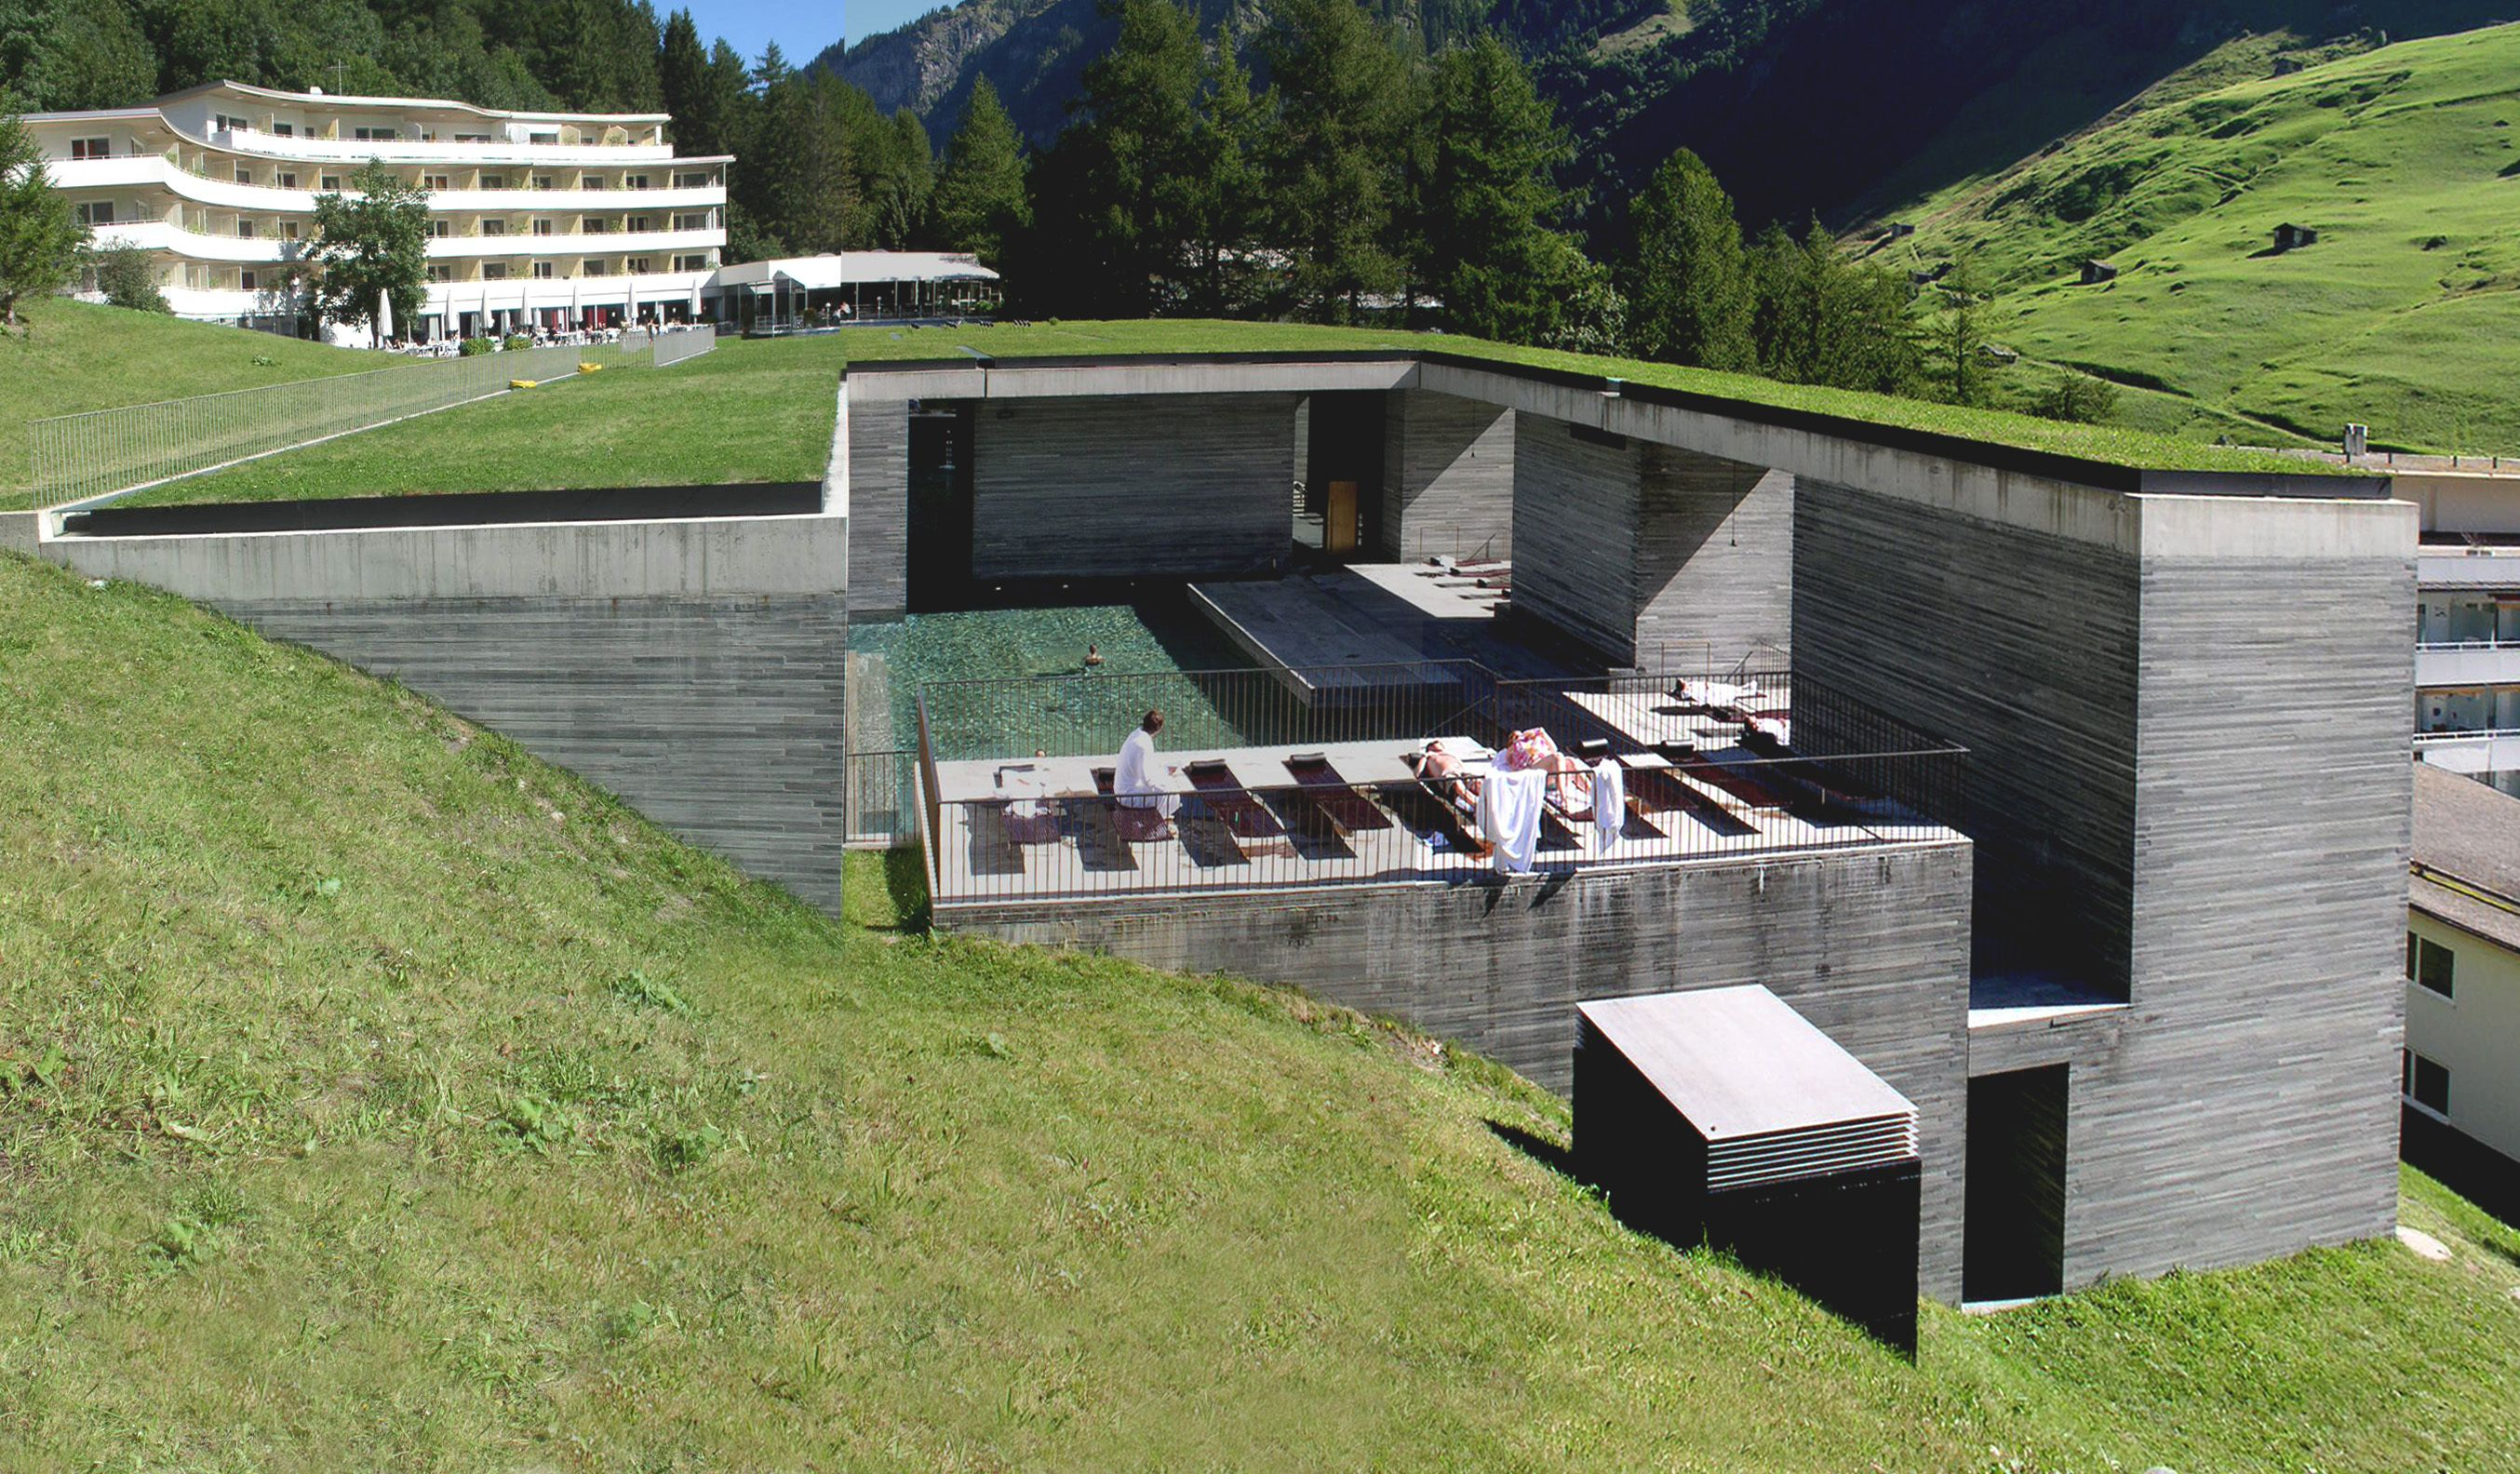 Therme Vals is a hotel/spa in Vals, Switzerland. The